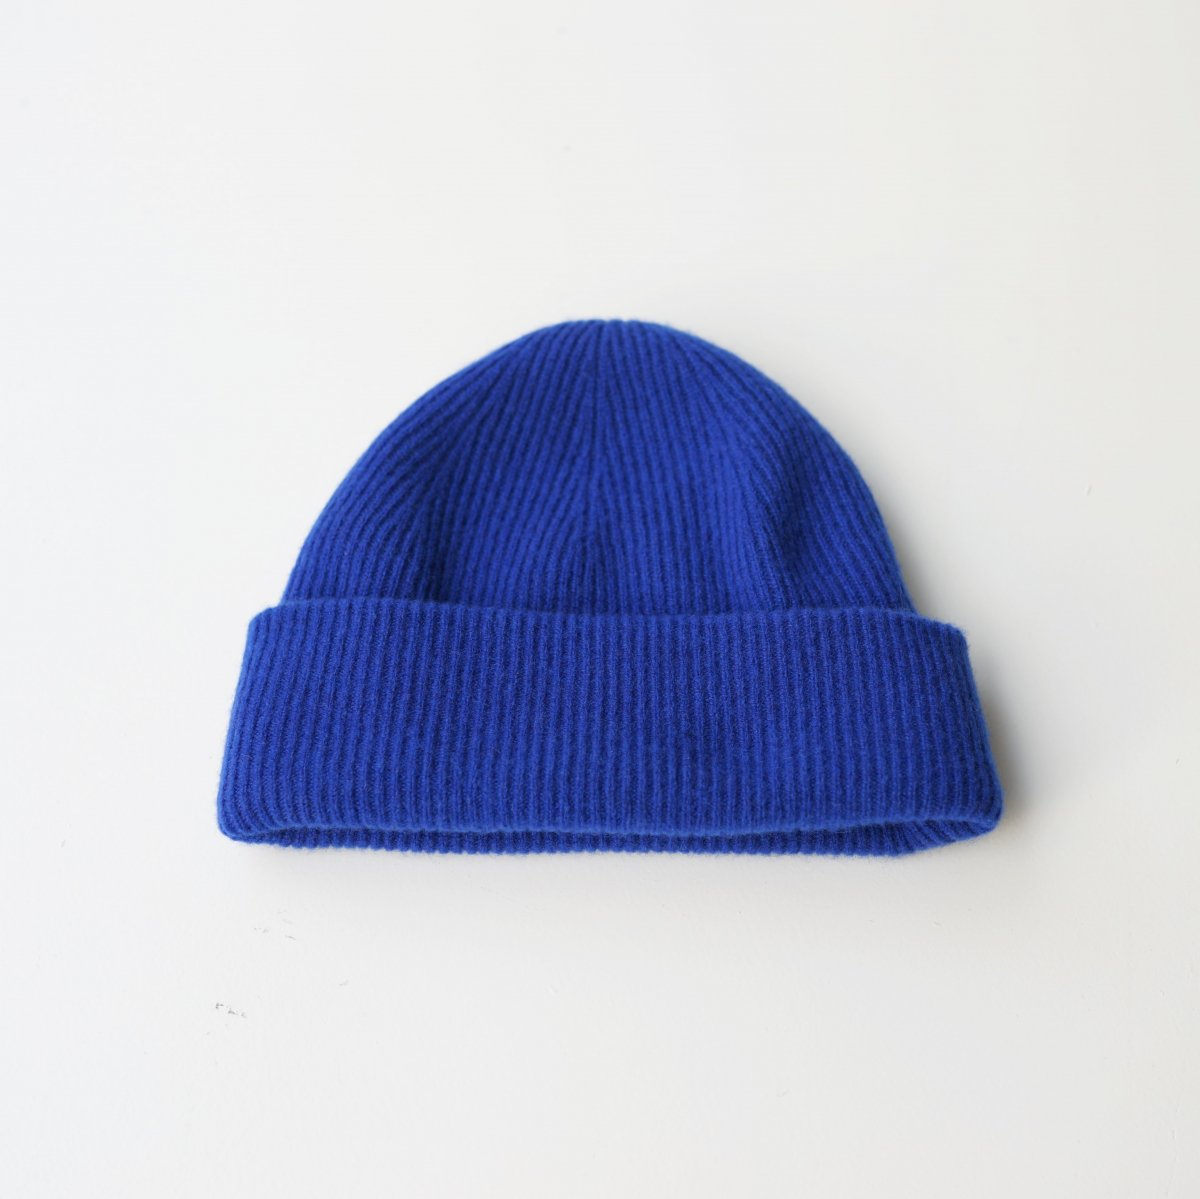 【UNDECORATED アンデコレイテッド】PURE CASHMERE KNIT CAP - BLUE